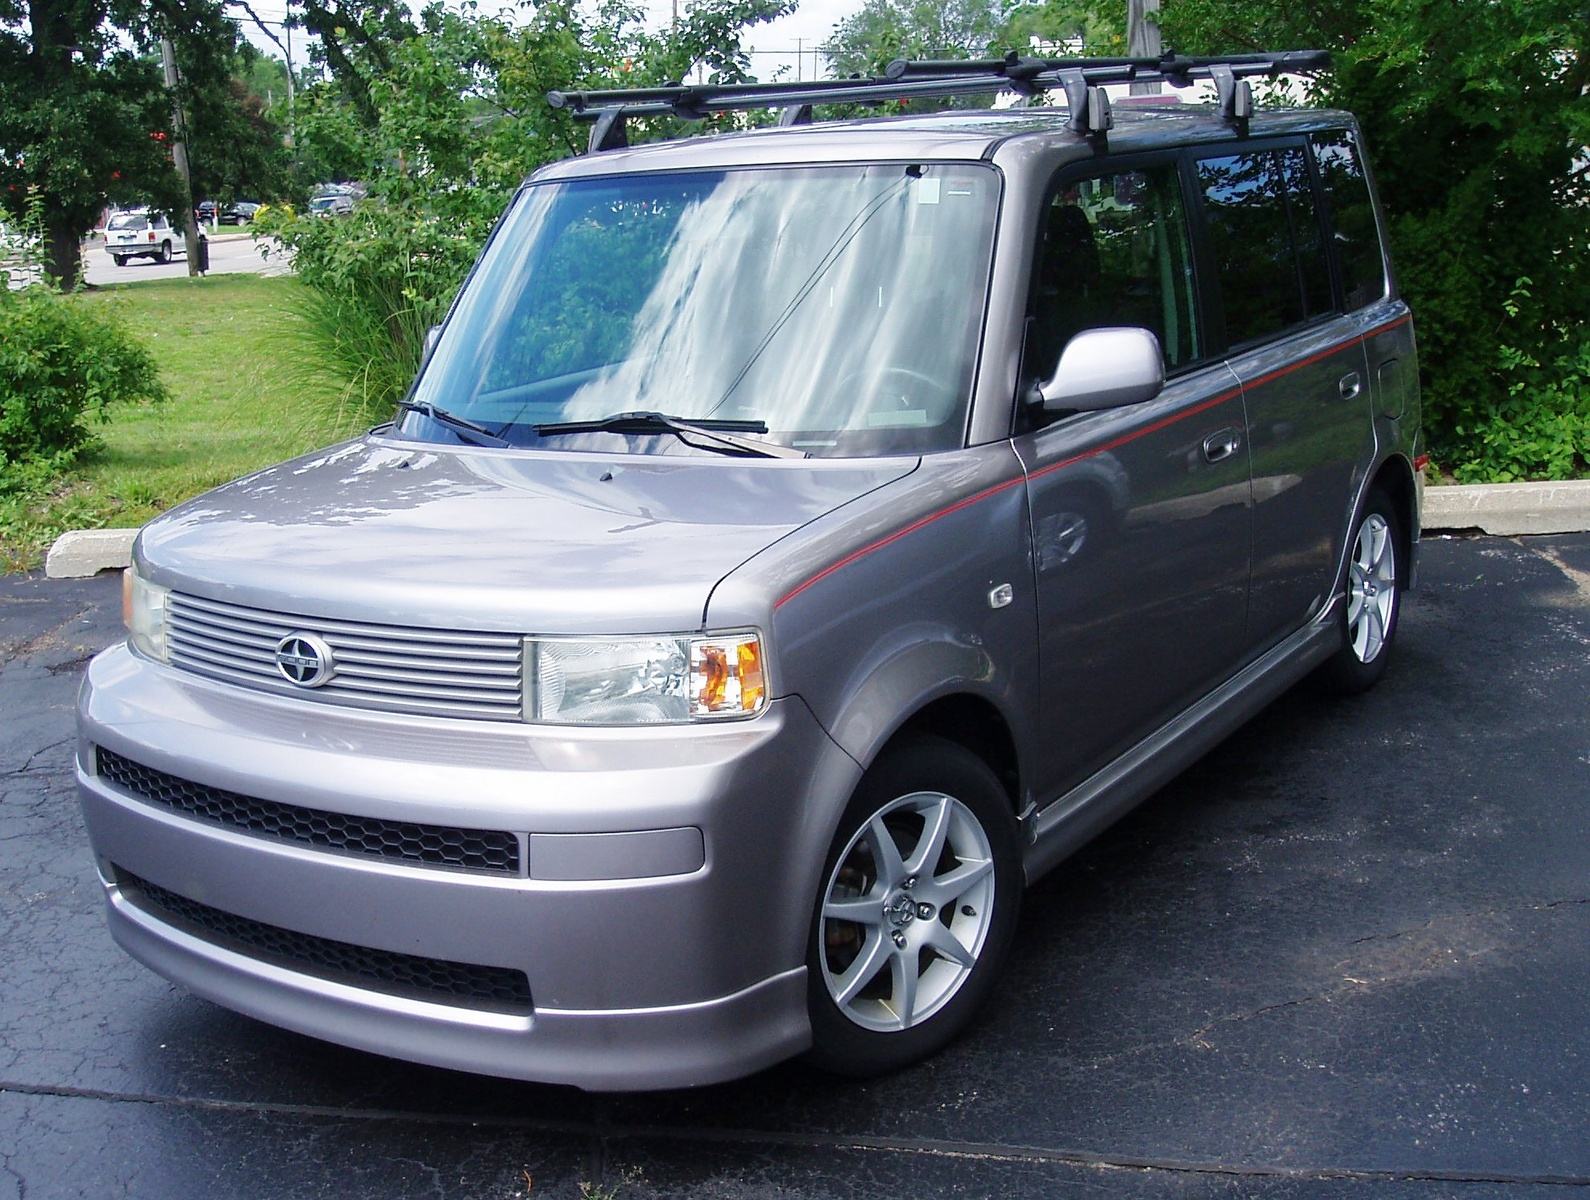 scion xb 2006 autos weblog. Black Bedroom Furniture Sets. Home Design Ideas